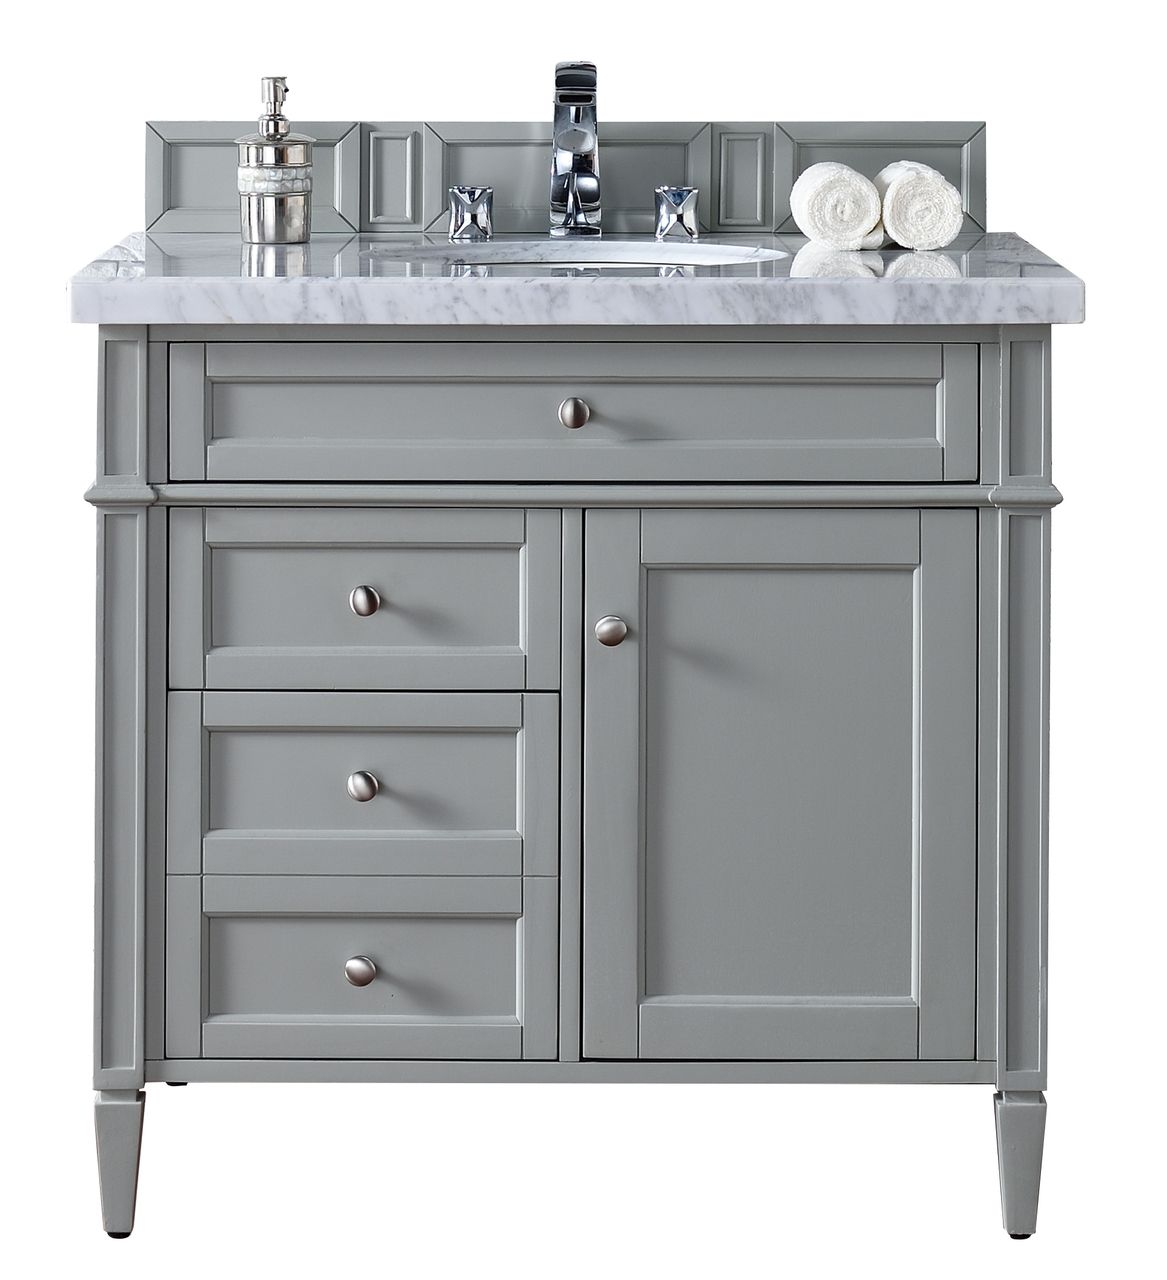 36 brittany single bathroom vanity urban gray grey Bathroom cabinets gray